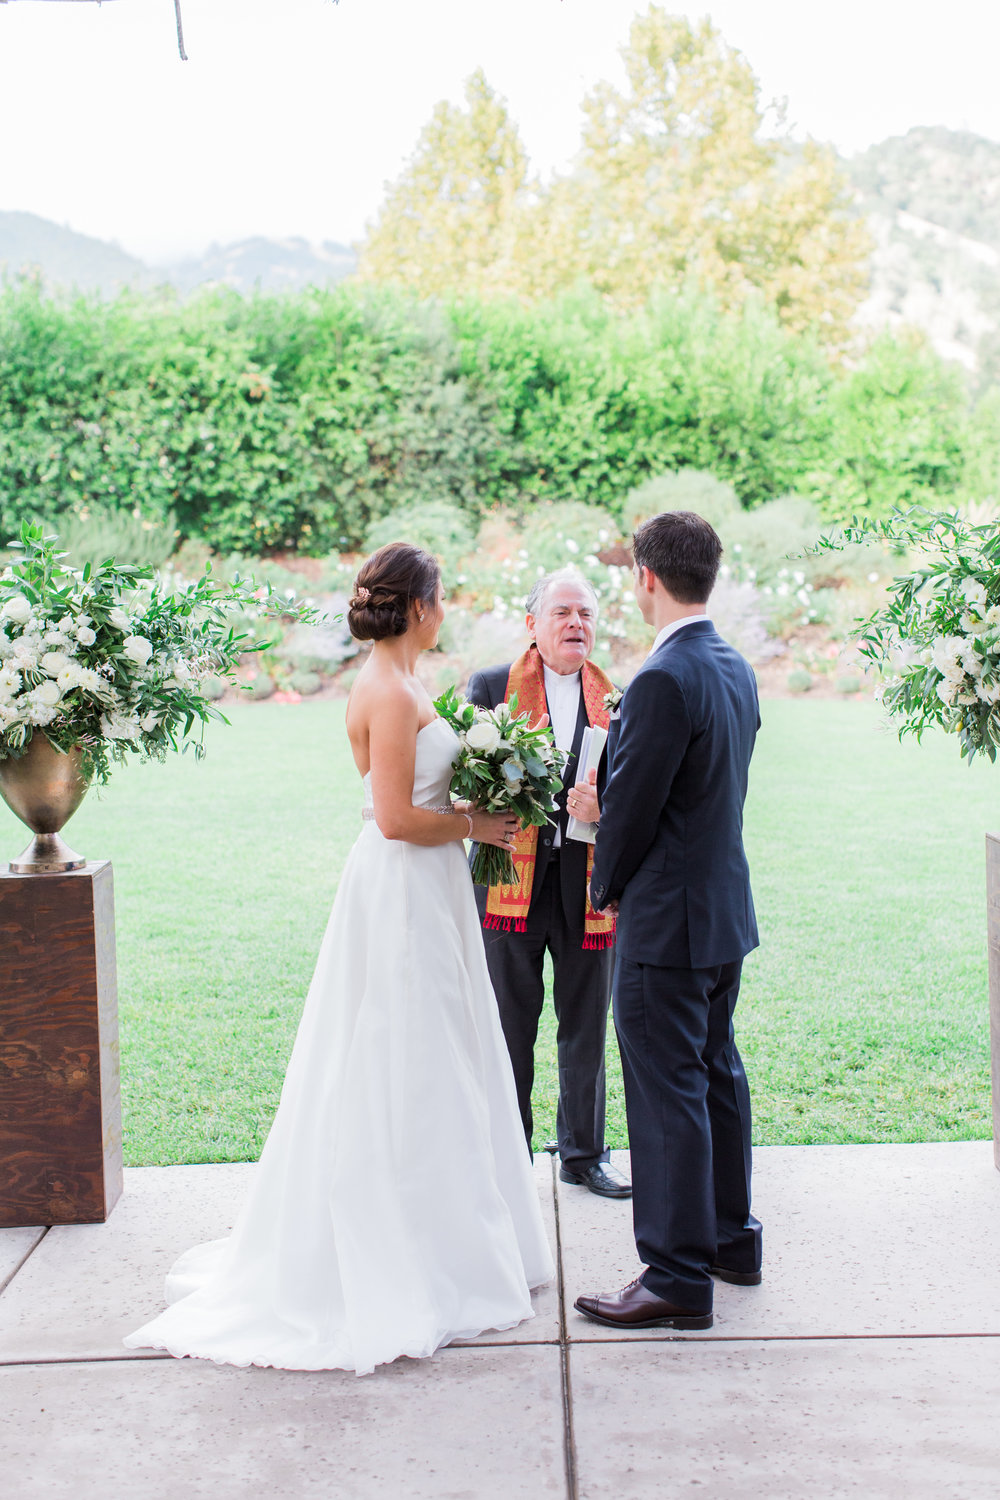 intimate-wedding-at-solage-calistoga-in-napa-62.jpg